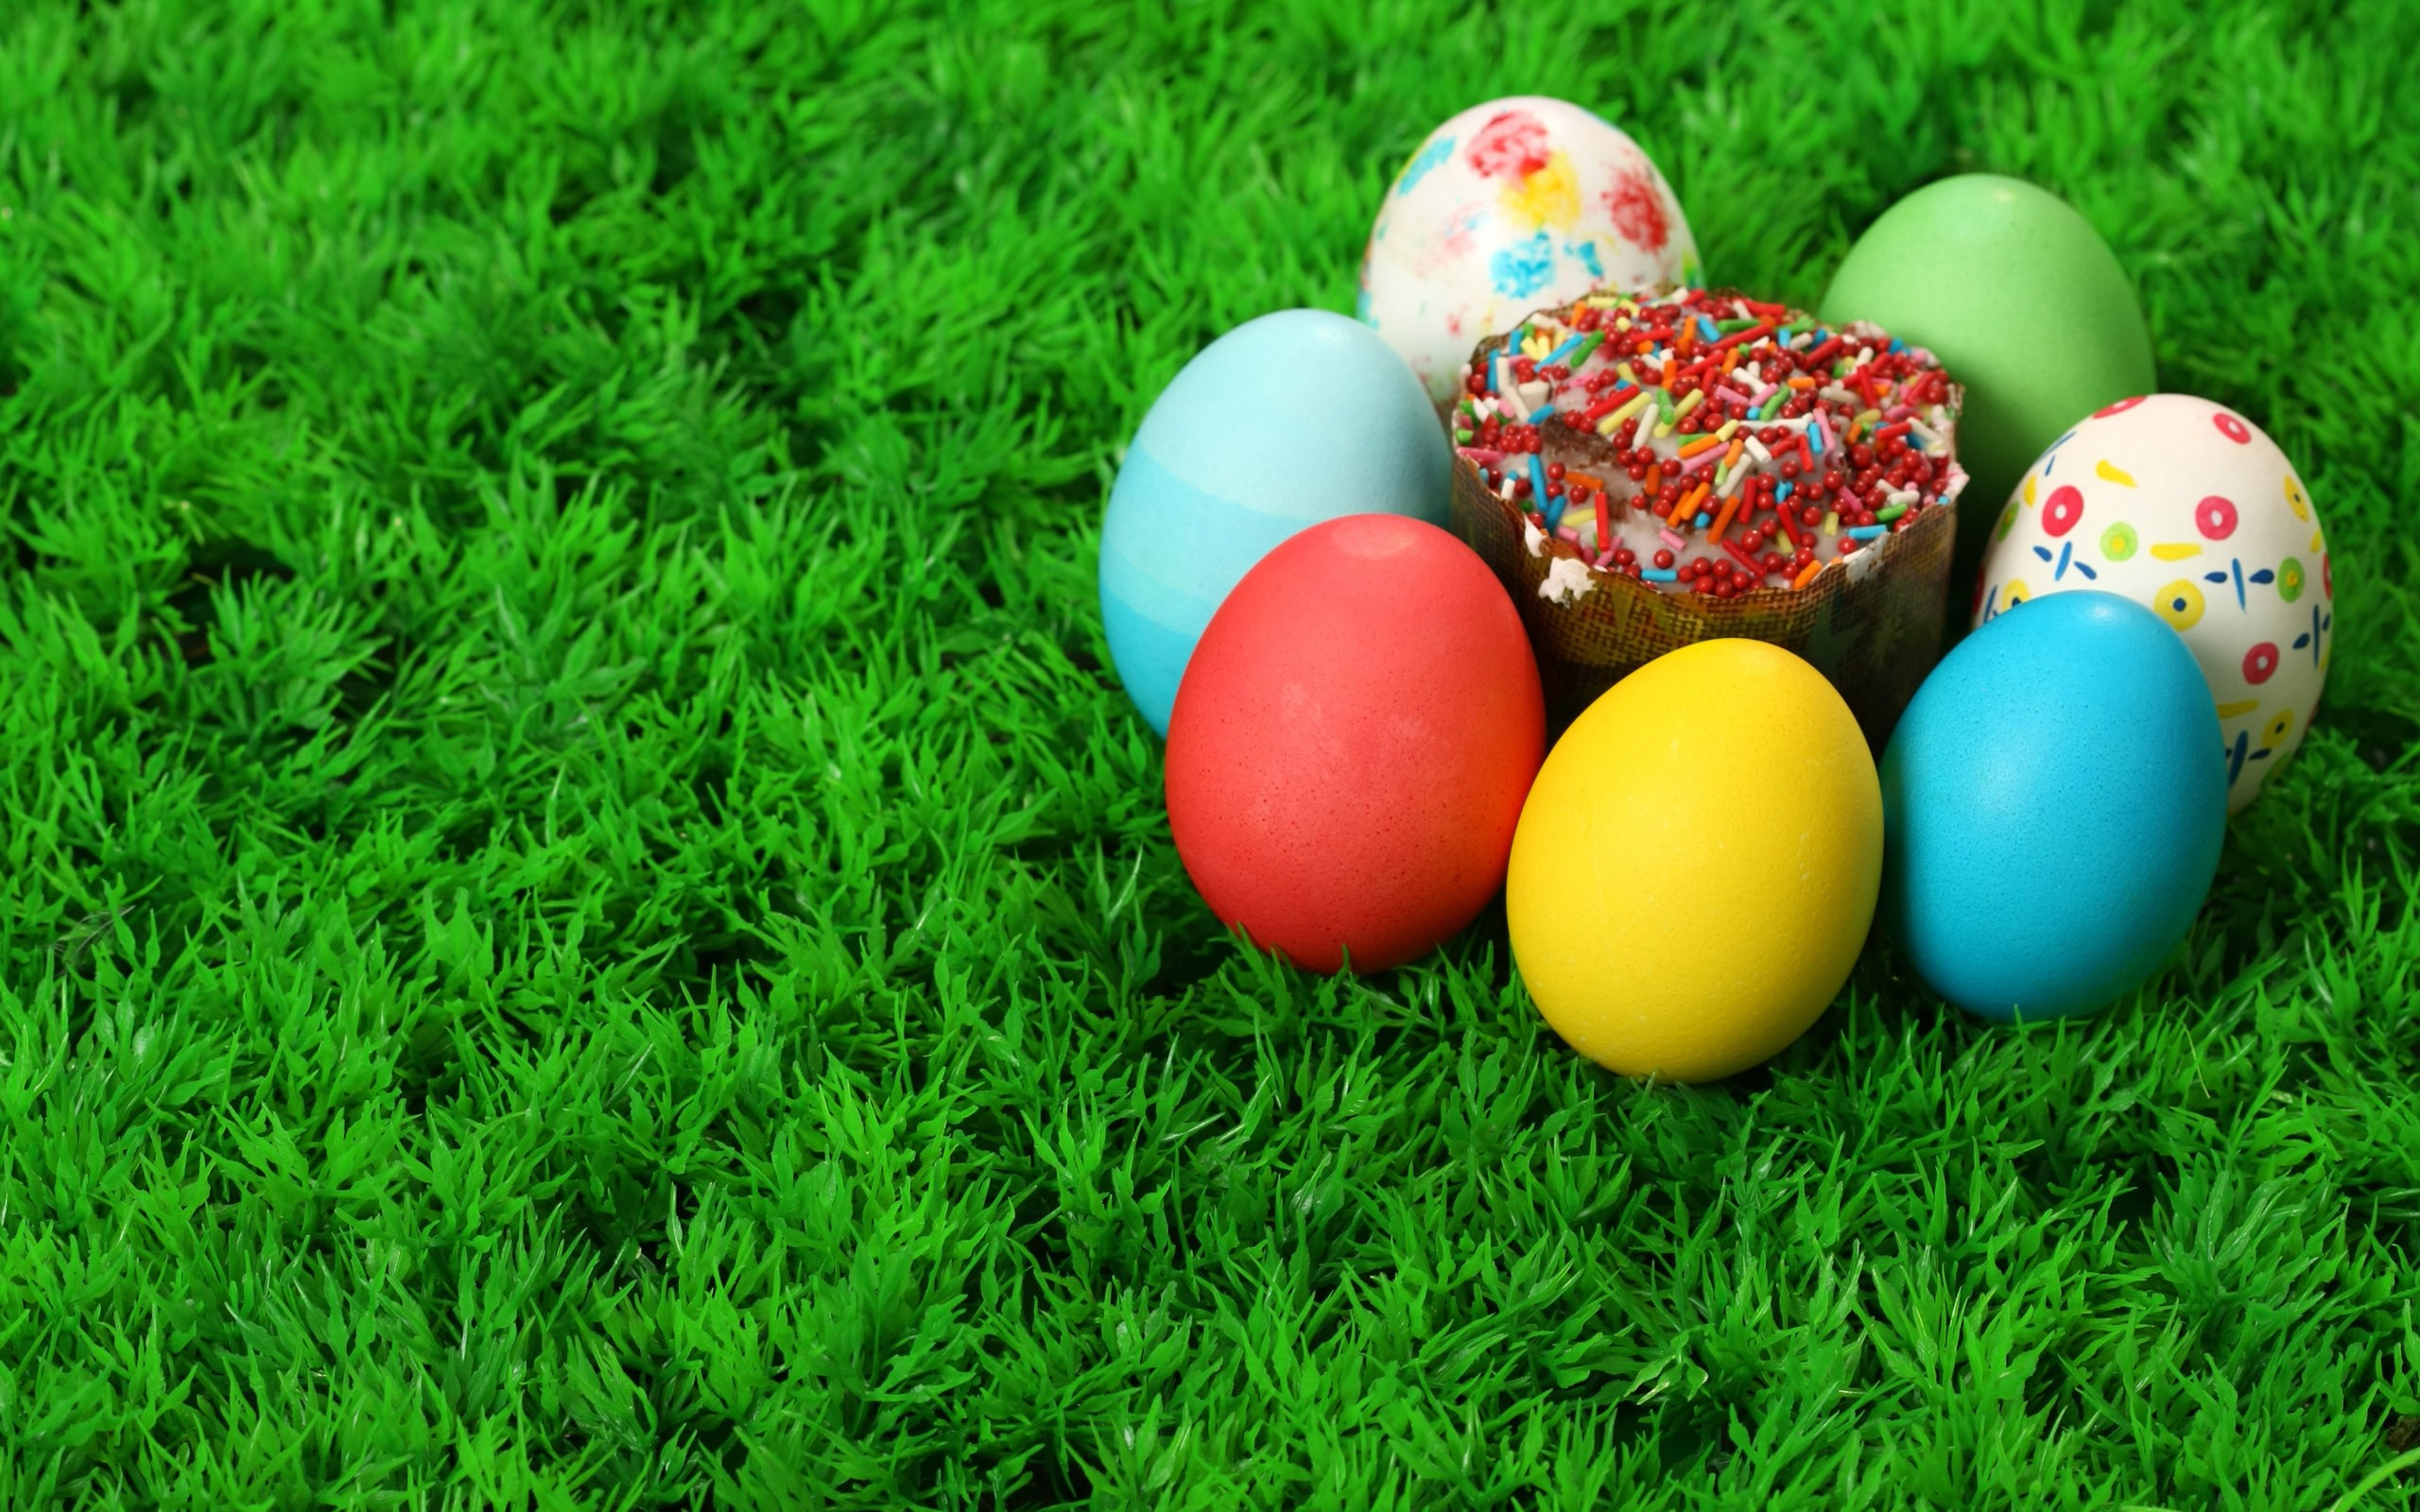 Easter Eggs | Live HD Easter Eggs Wallpapers, Photos